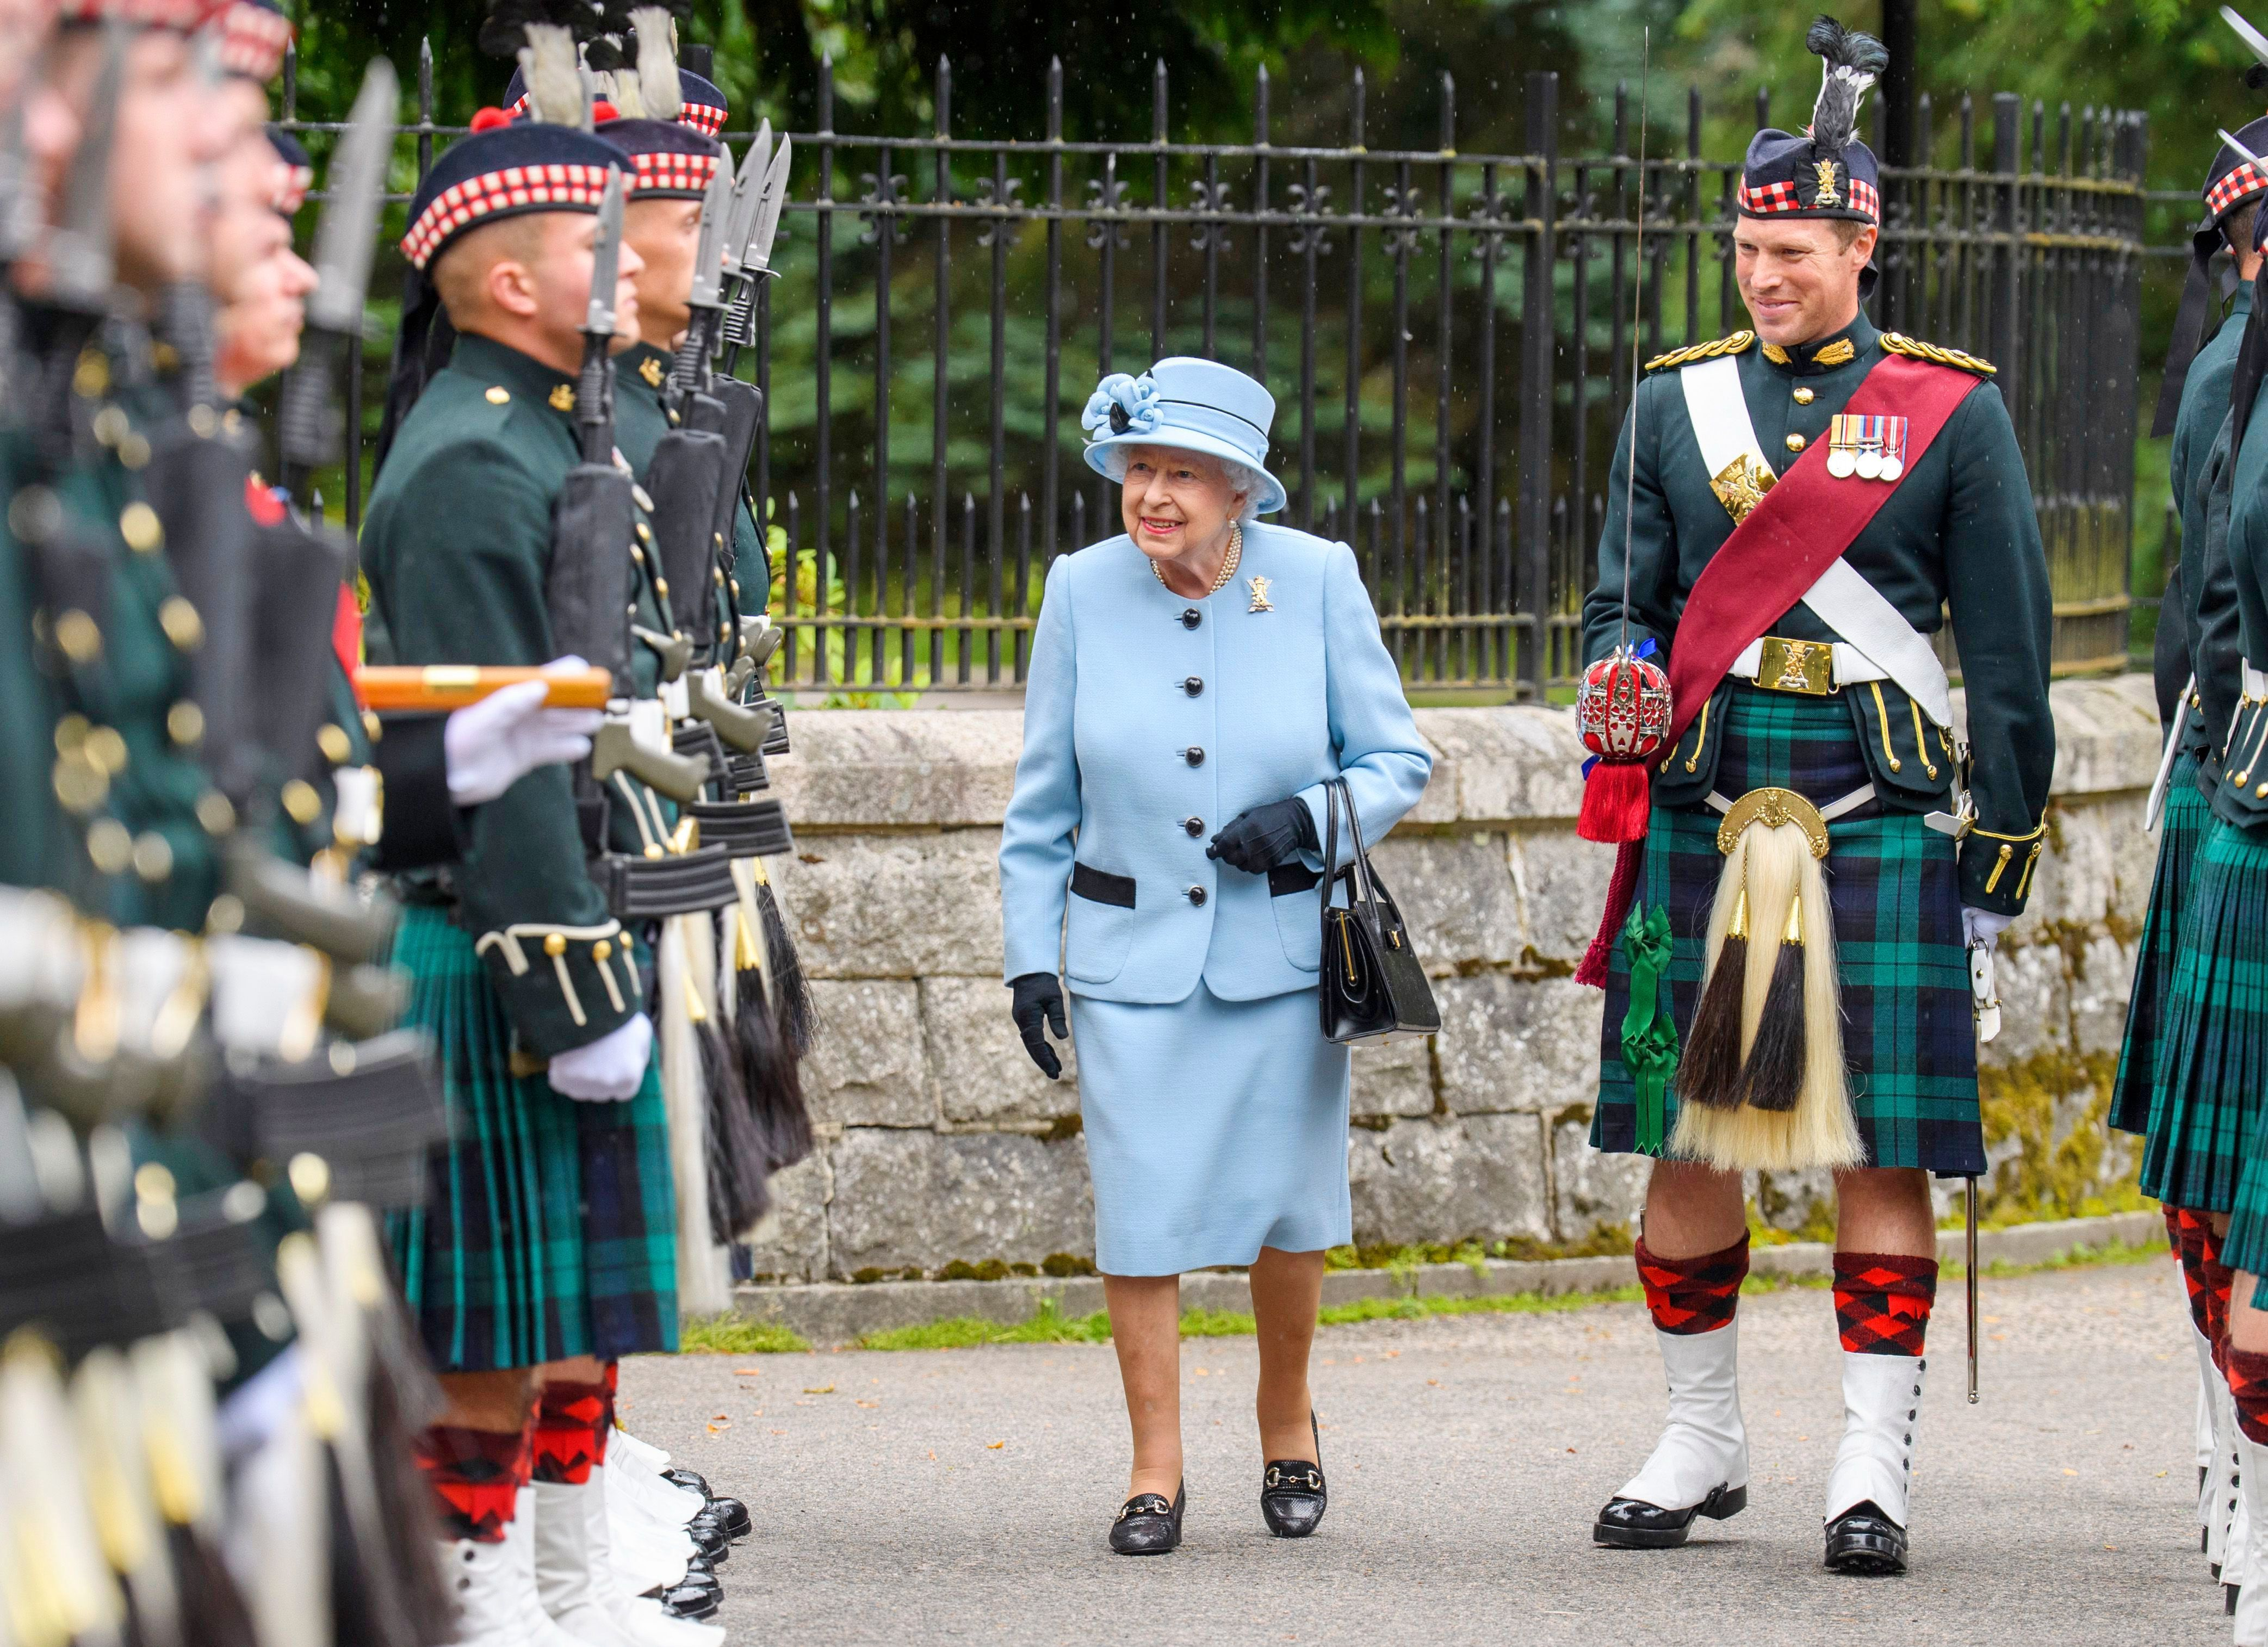 The best photos of the royal family in Scotland